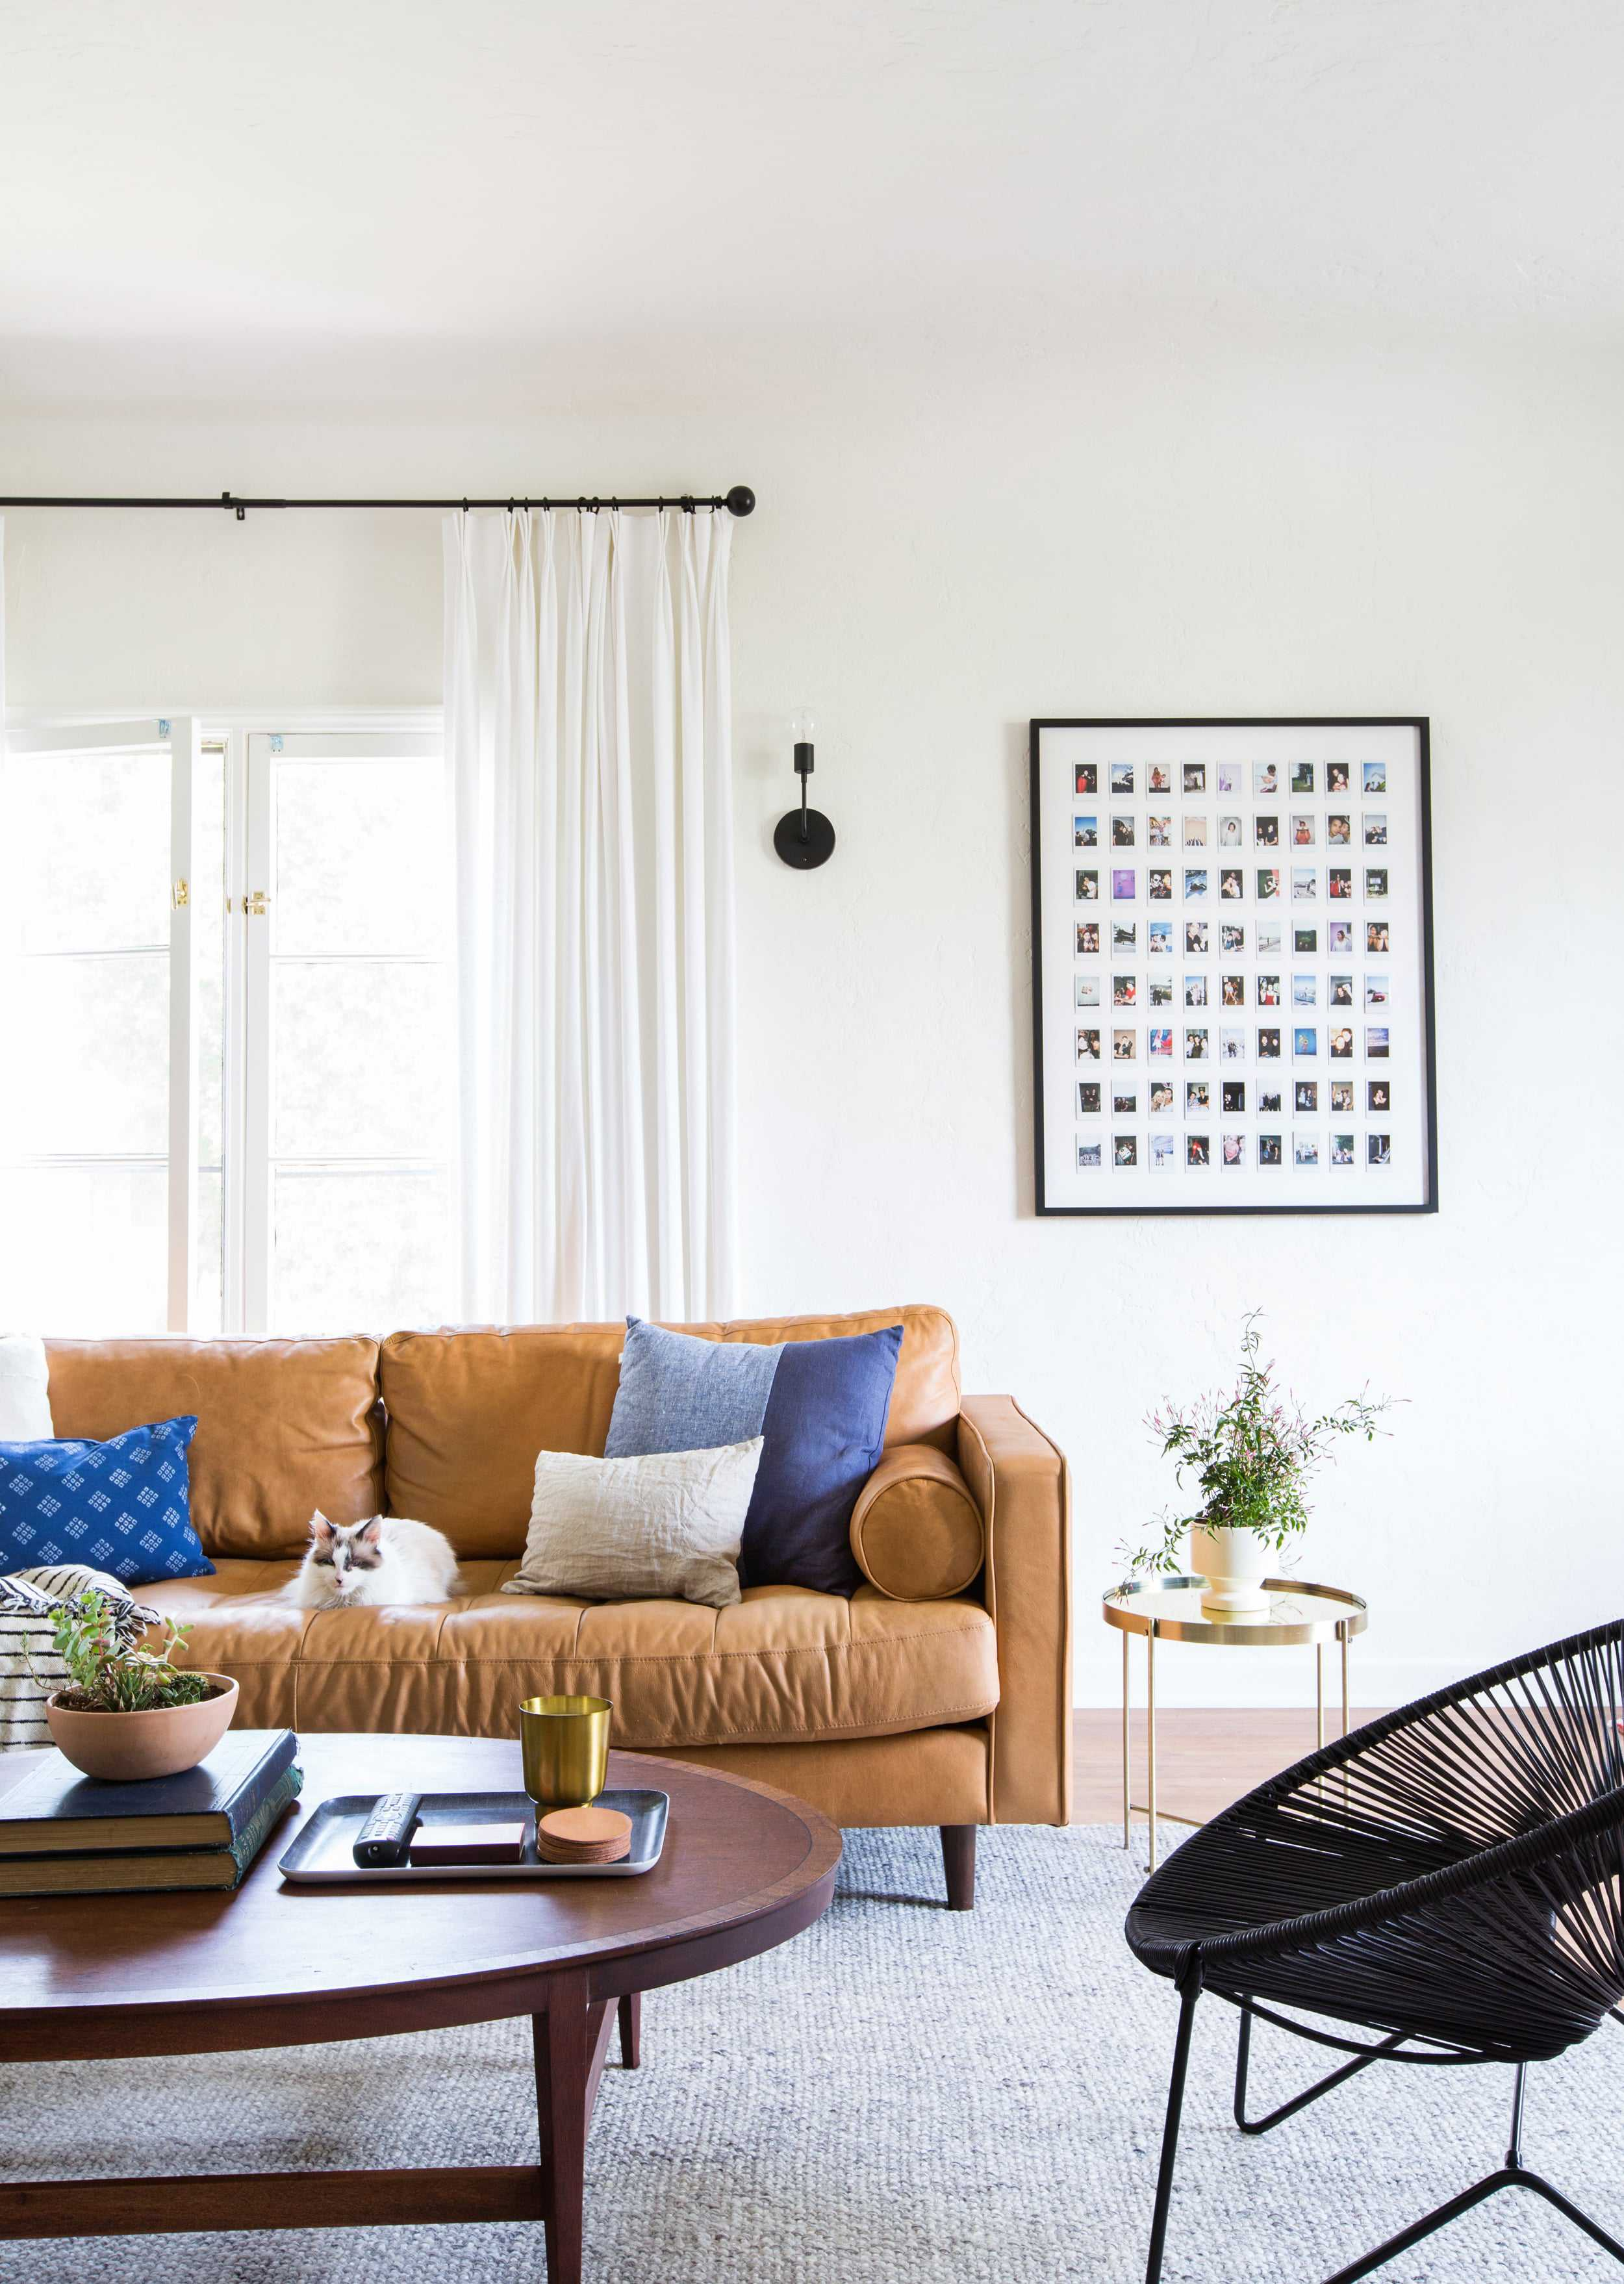 How To Design Your First Apartment On A Tight Budget,Elegant Dining Room Sets For Small Spaces